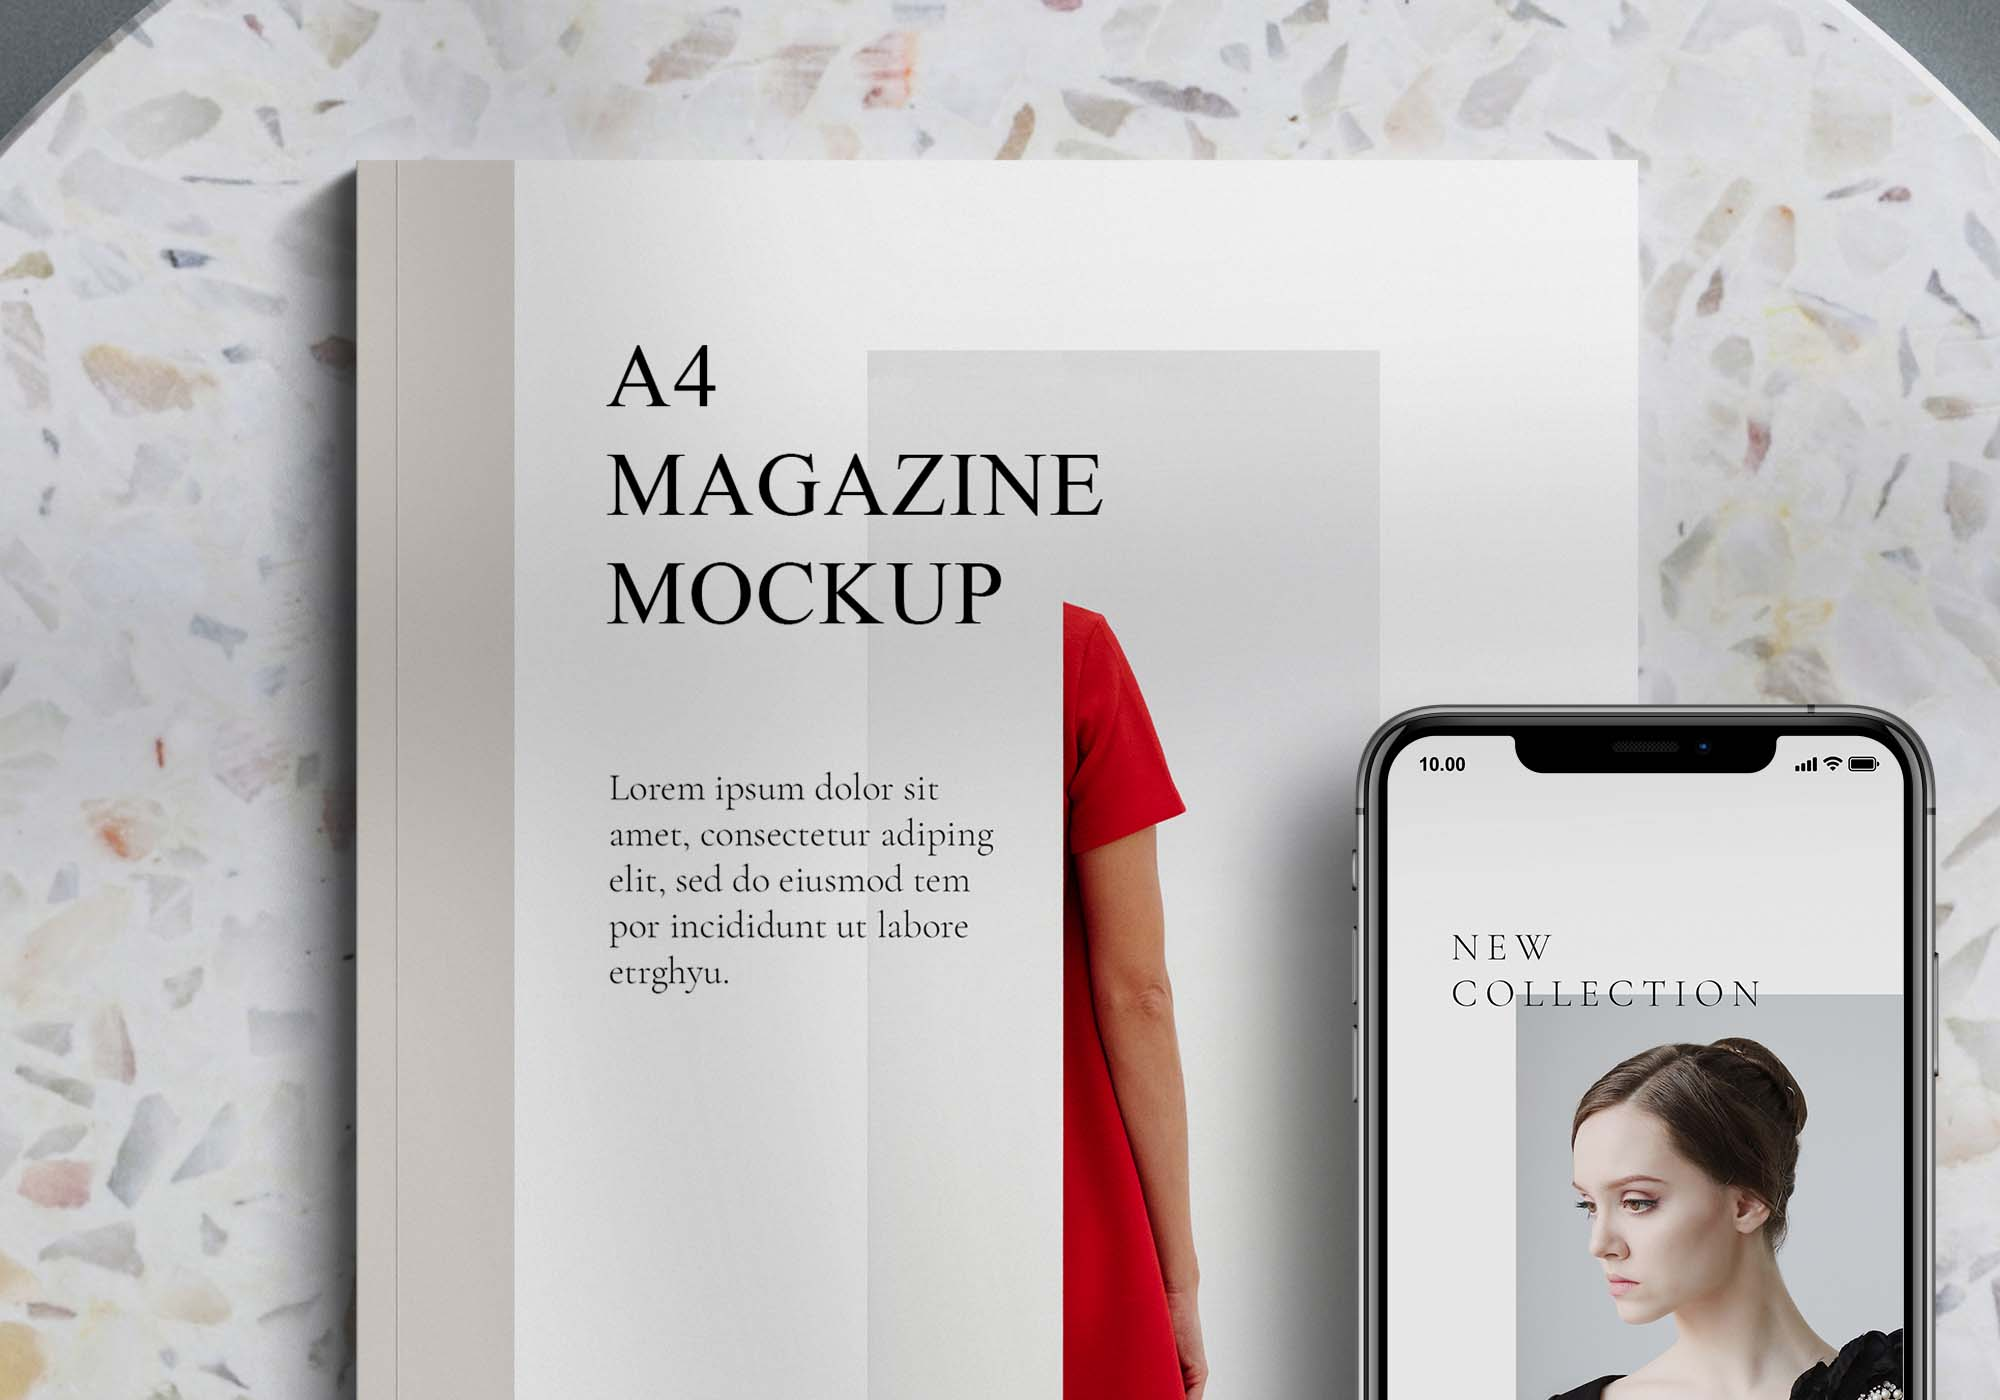 Magazine and Phone Mockup